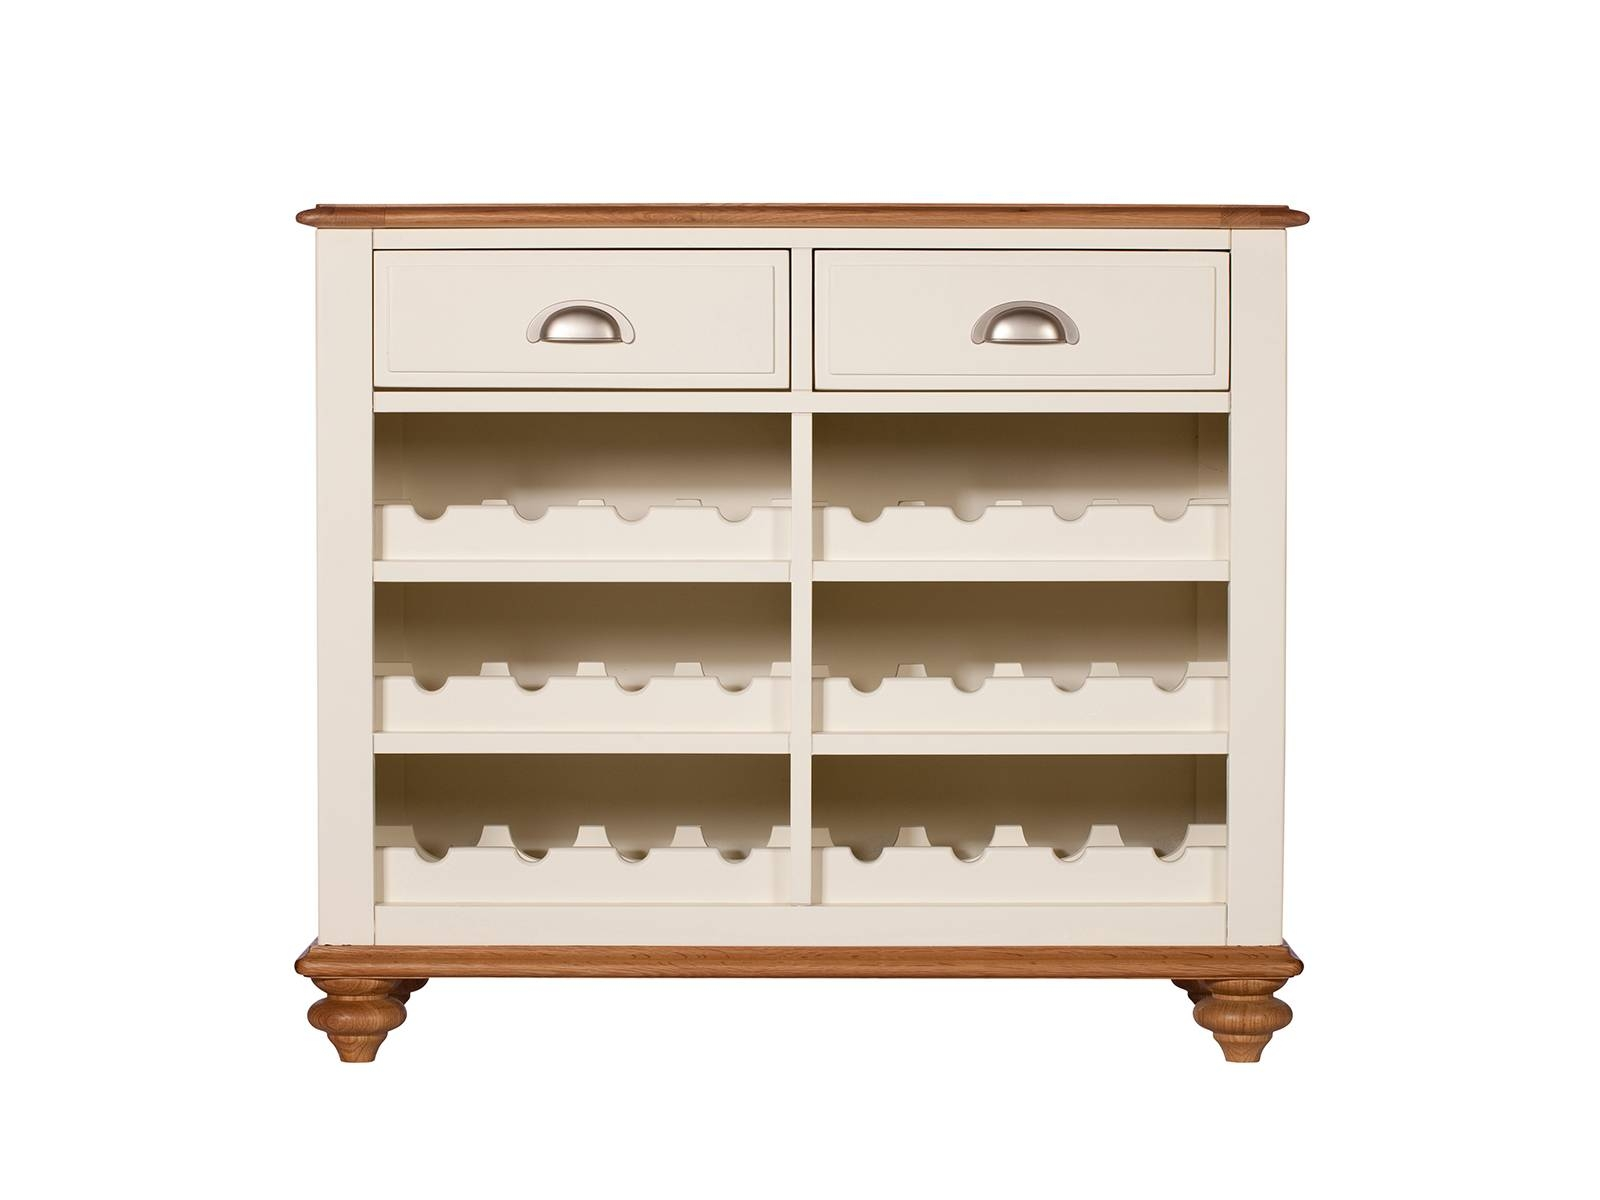 Shropshire Dining Narrow Sideboard With Wine Rack | Sideboards Inside Narrow Sideboards (View 20 of 20)